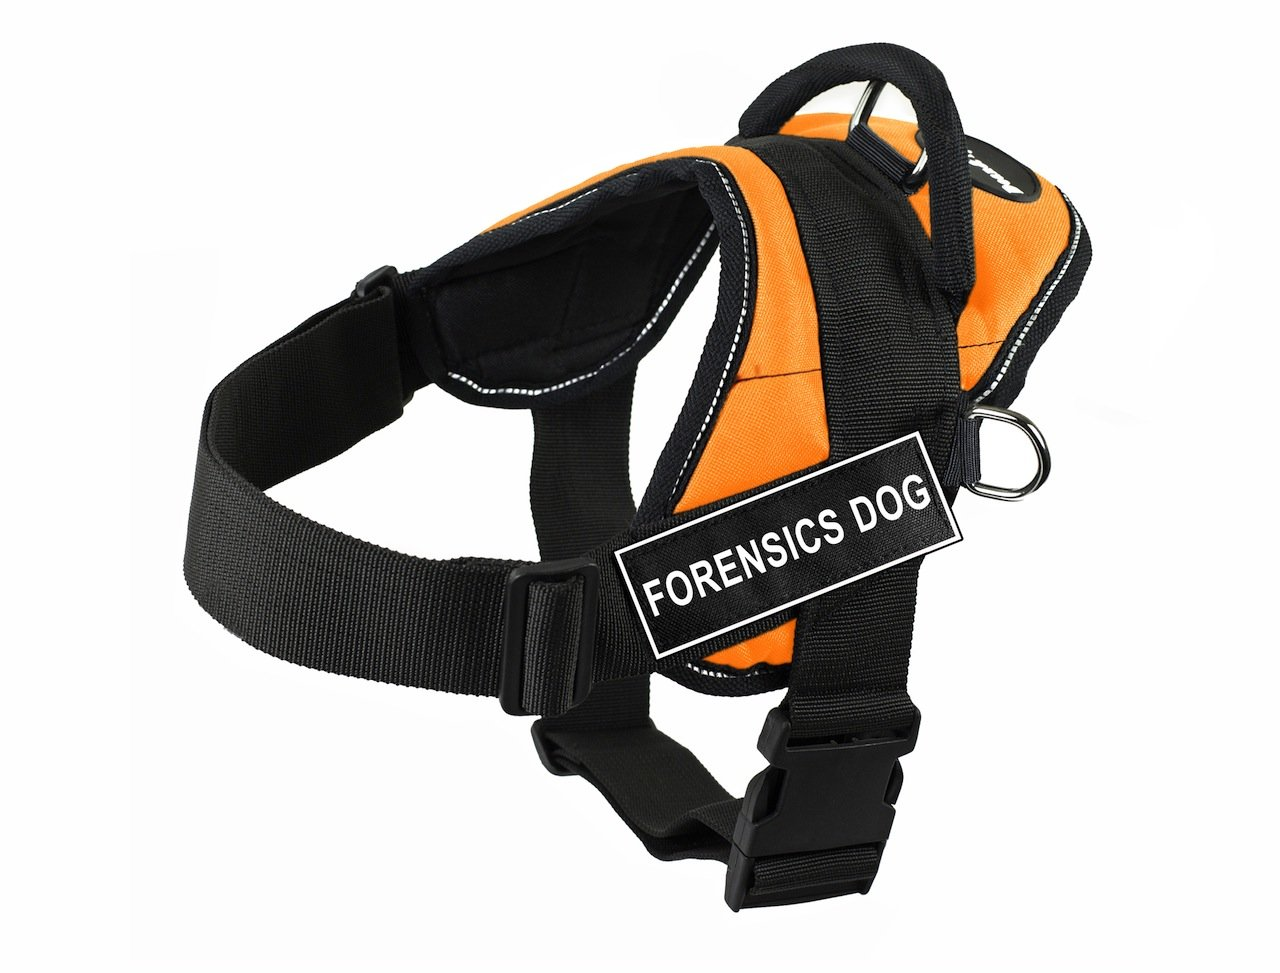 Dean & Tyler DT Fun Forensics Dog Harness with Reflective Trim, XX-Small, orange